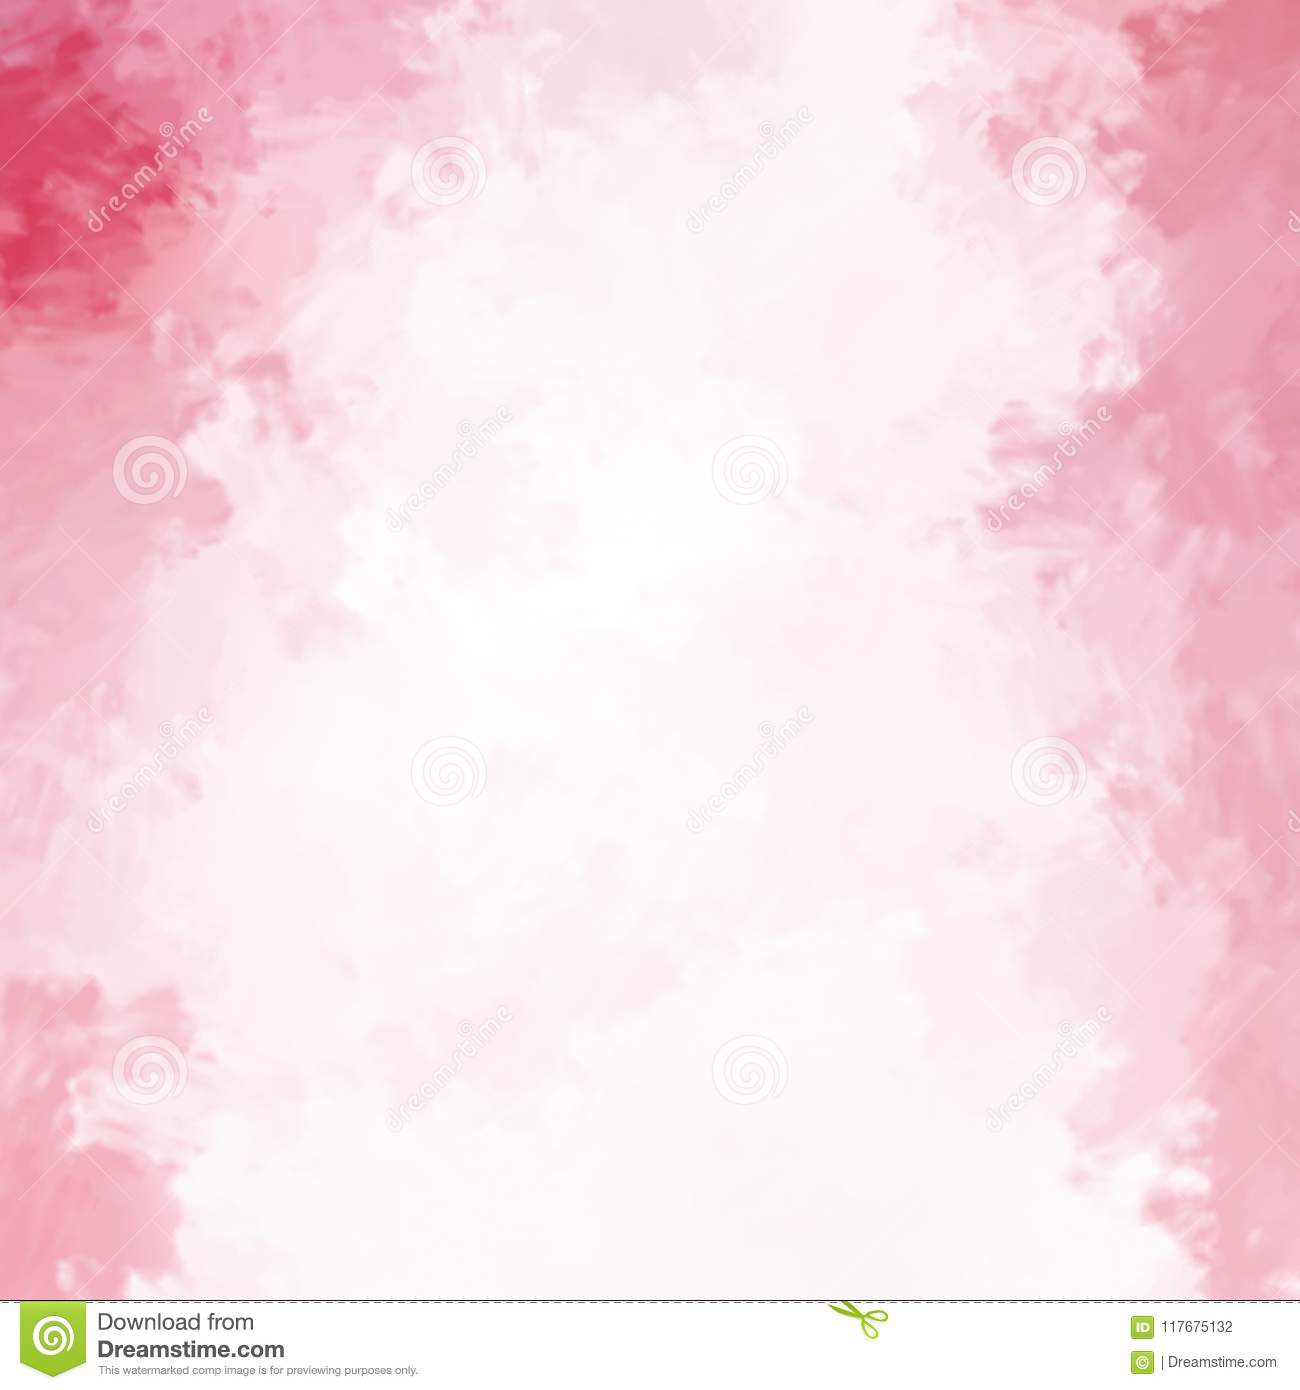 Brushed Painted Abstract Background Brush Stroked Abstract